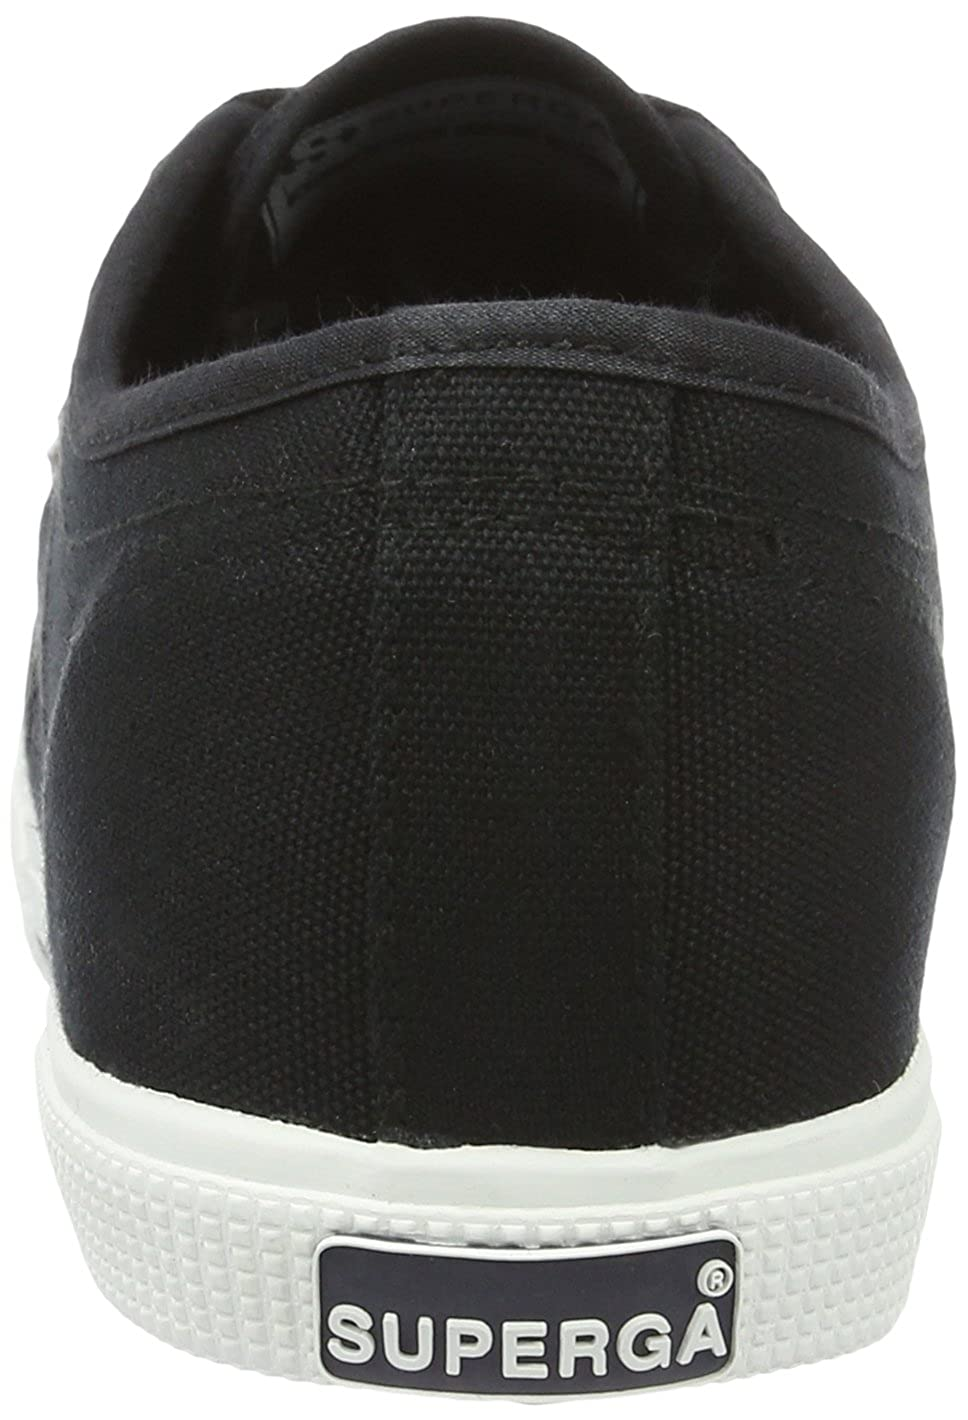 Scarpe Superga Superga it 2950 Borse Sneakers Cotu E Unisex Amazon 00rwv